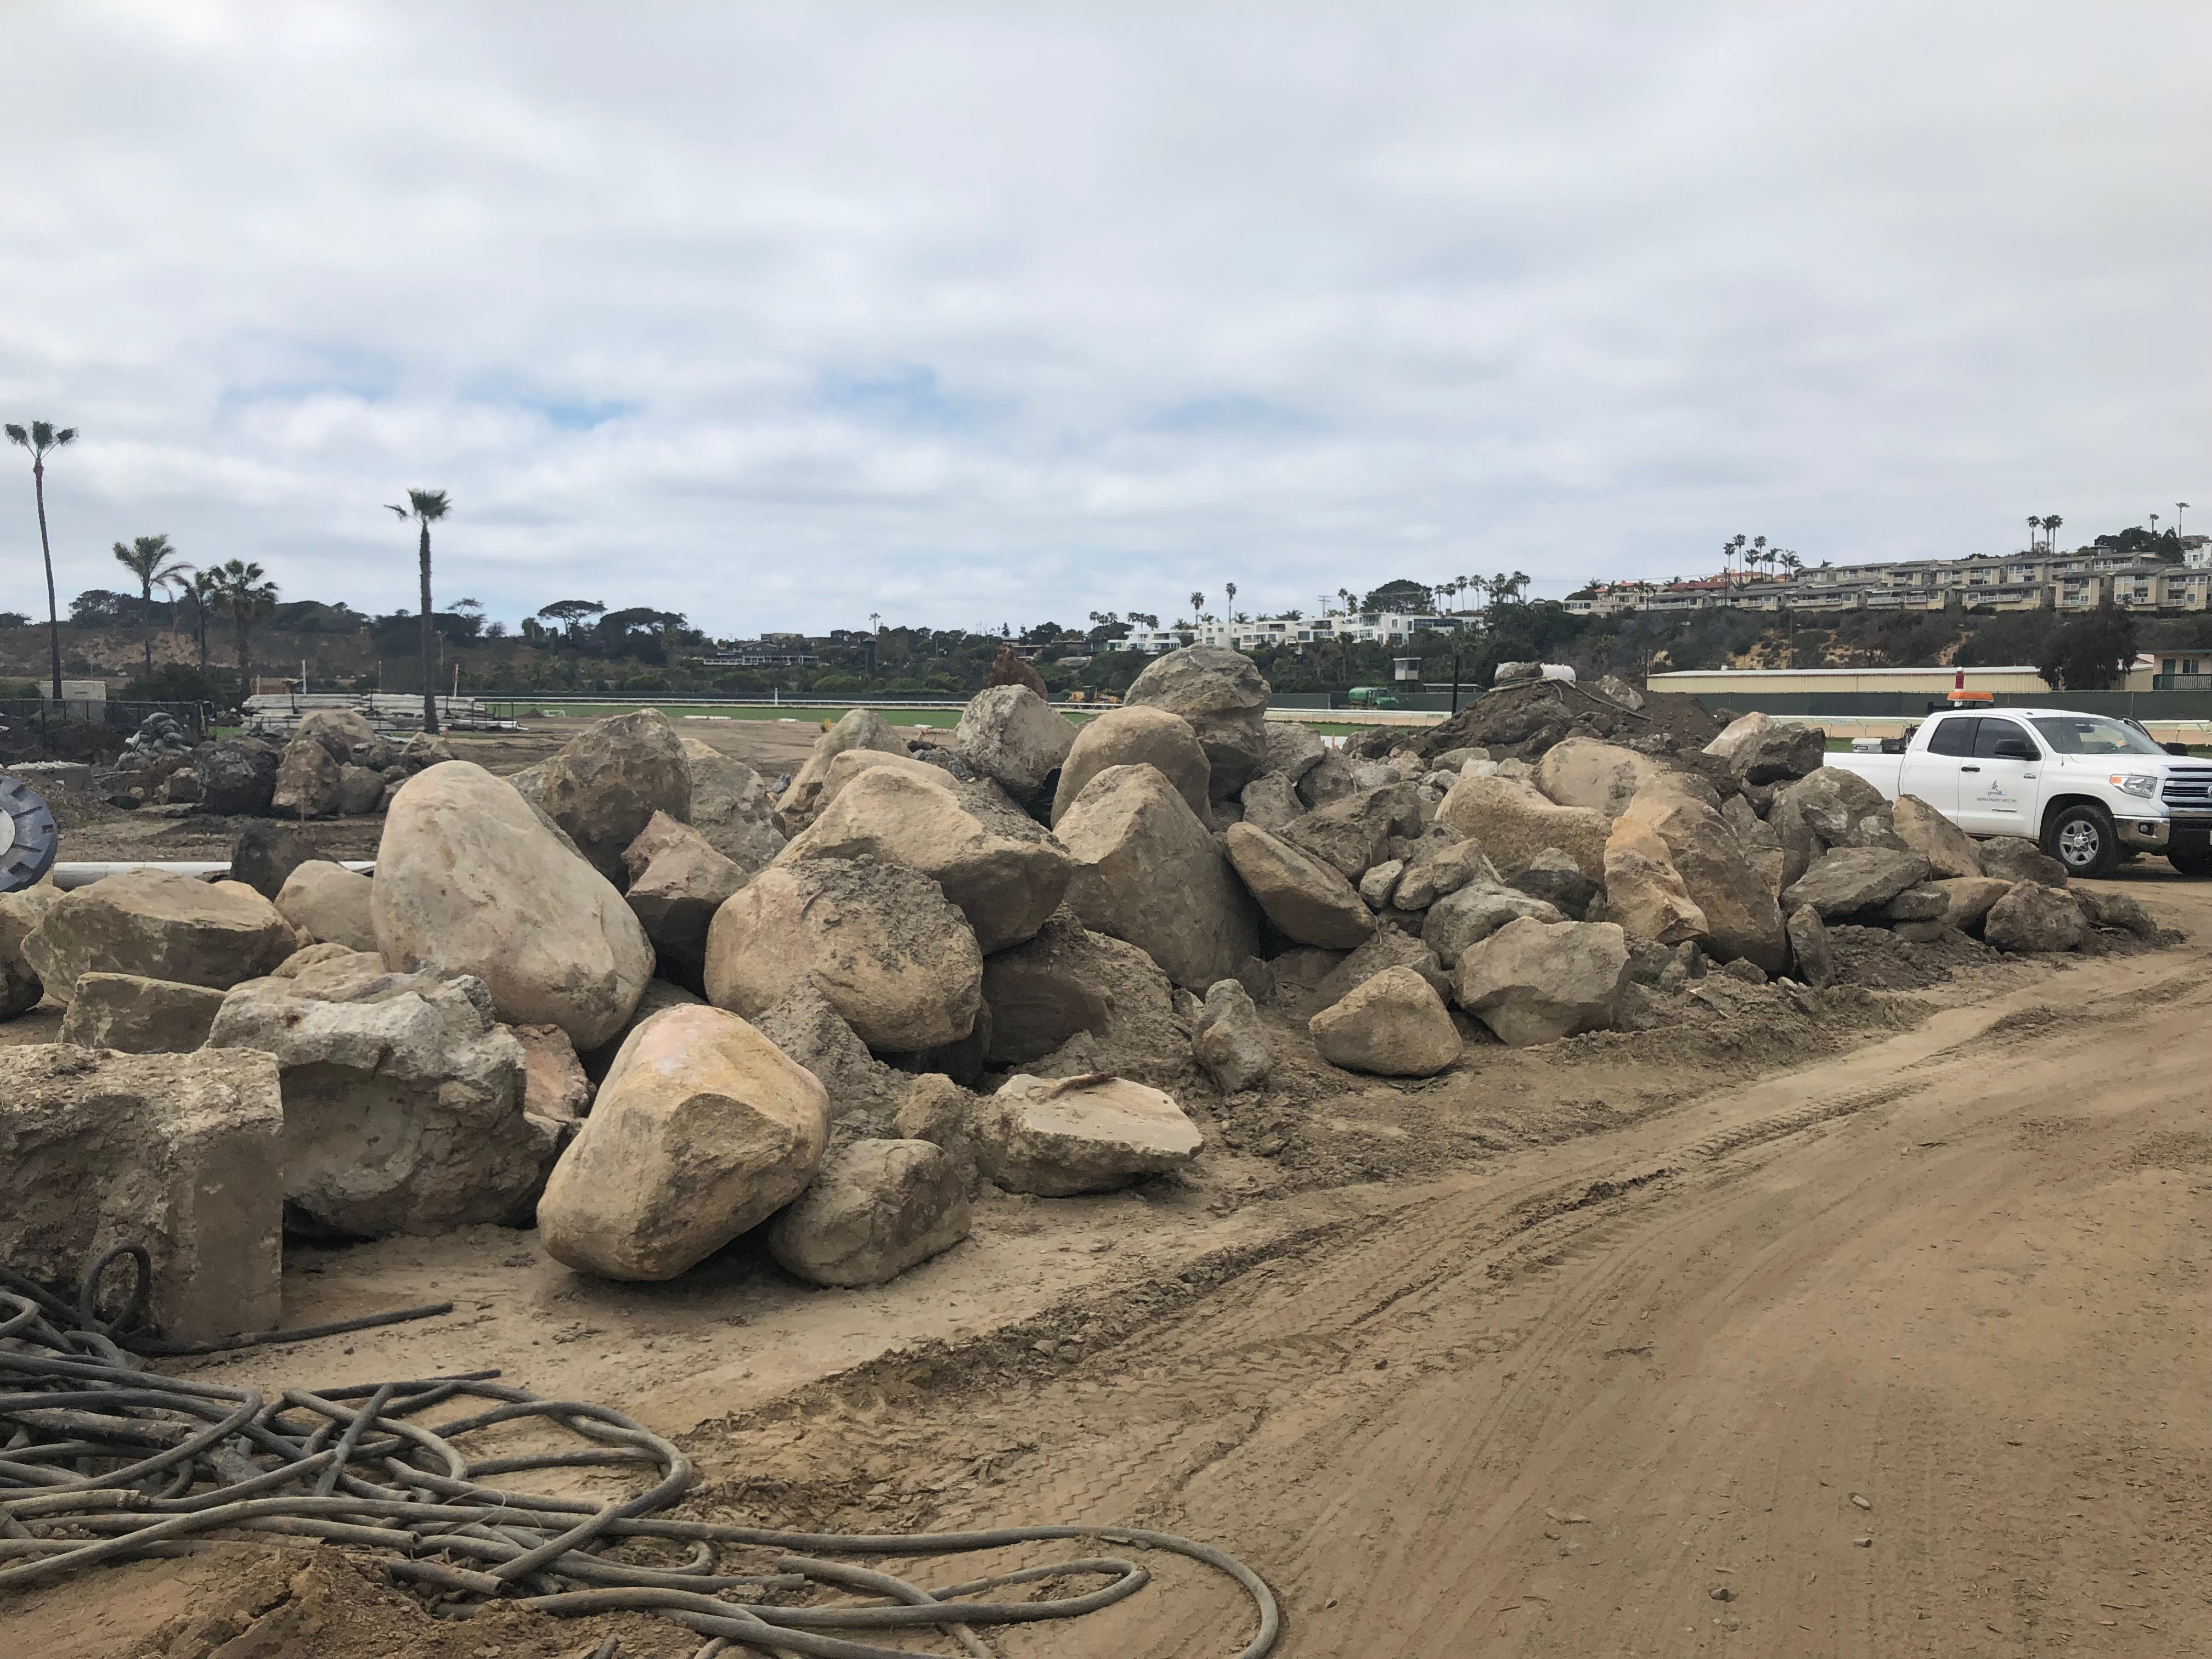 Boulders, in a long pile with a white truck in the background